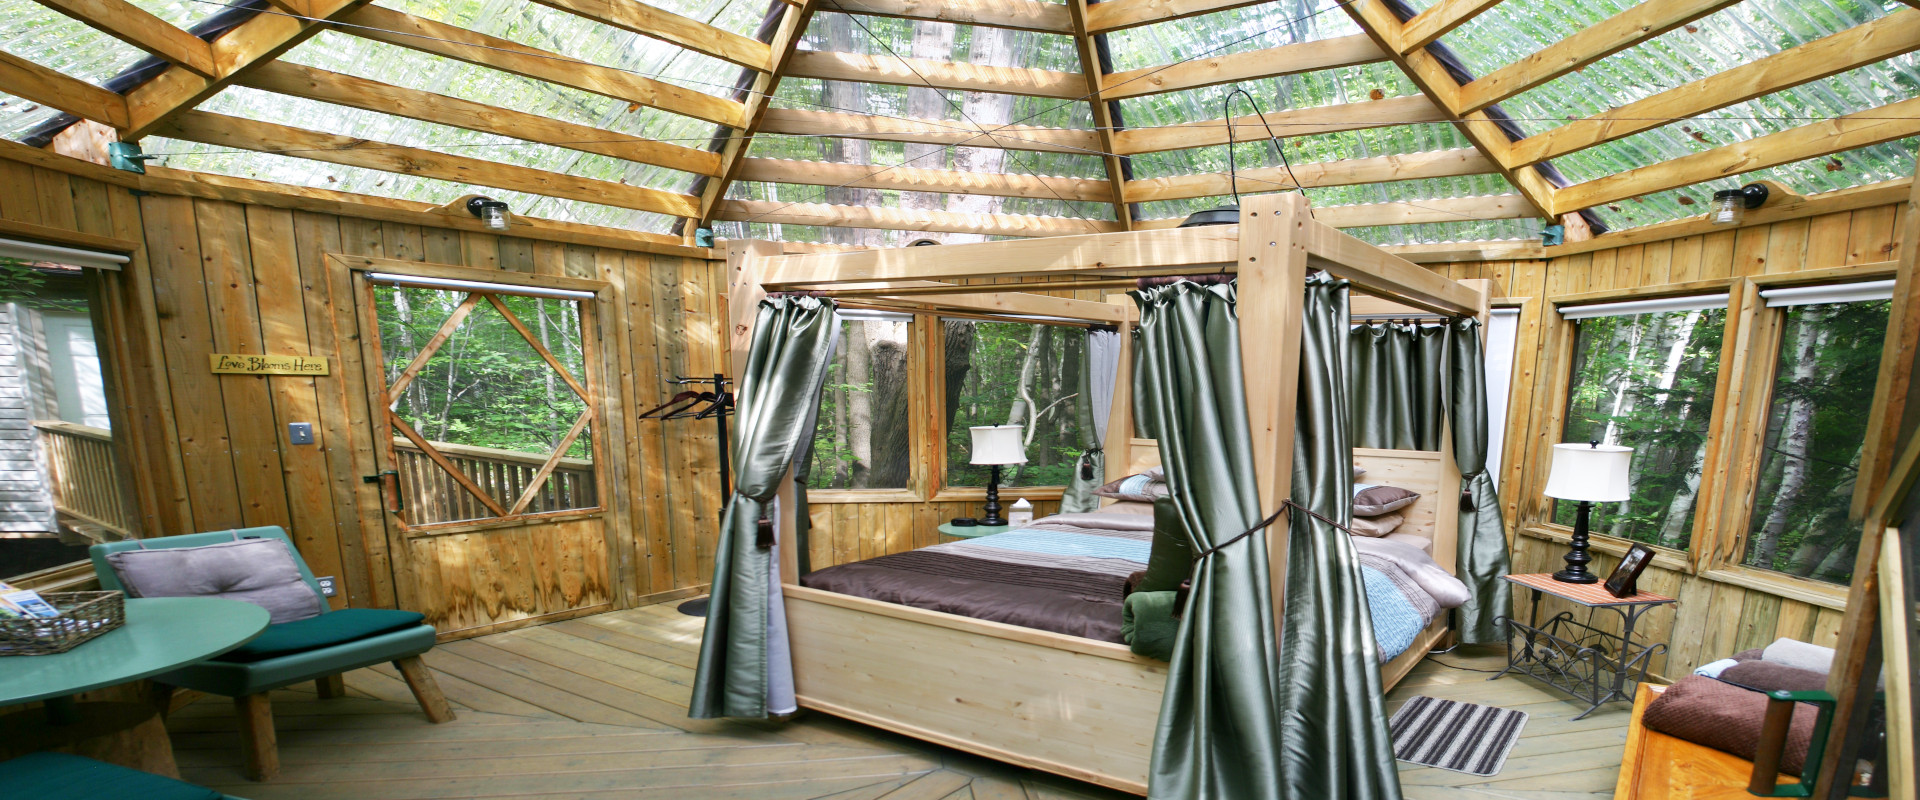 The interior of a glamping bedroom suite